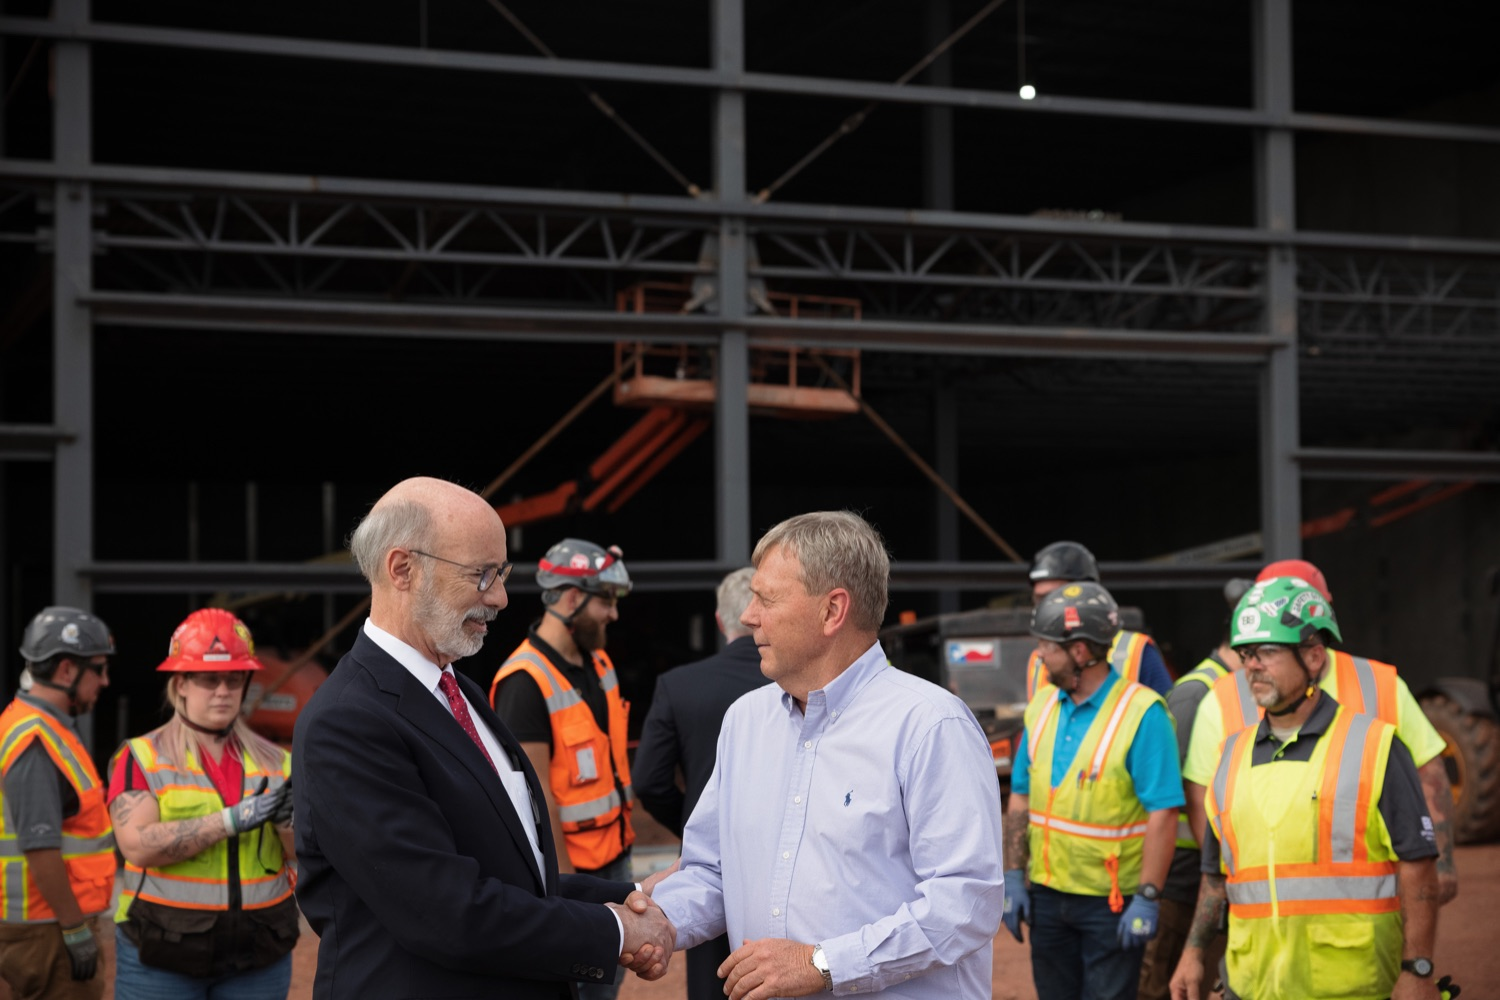 """<a href=""""https://filesource.wostreaming.net/commonwealthofpa/photo/20126_gov_economicDevelopment_dz_005.jpg"""" target=""""_blank"""">⇣Download Photo<br></a>Pennsylvania Governor Tom Wolf tours the site.  Governor Tom Wolf joined Clemens Food Group leaders, Agriculture Secretary Russell Redding, Sen. Maria Collett, Rep. Steve Malagari and members of the Governors Action Team today to tour the construction of the companys new facility in Montgomery County. The Wolf Administration supported the project which will expand the business operations and create new jobs in the region. Hatfield, PA   October 8, 2021"""